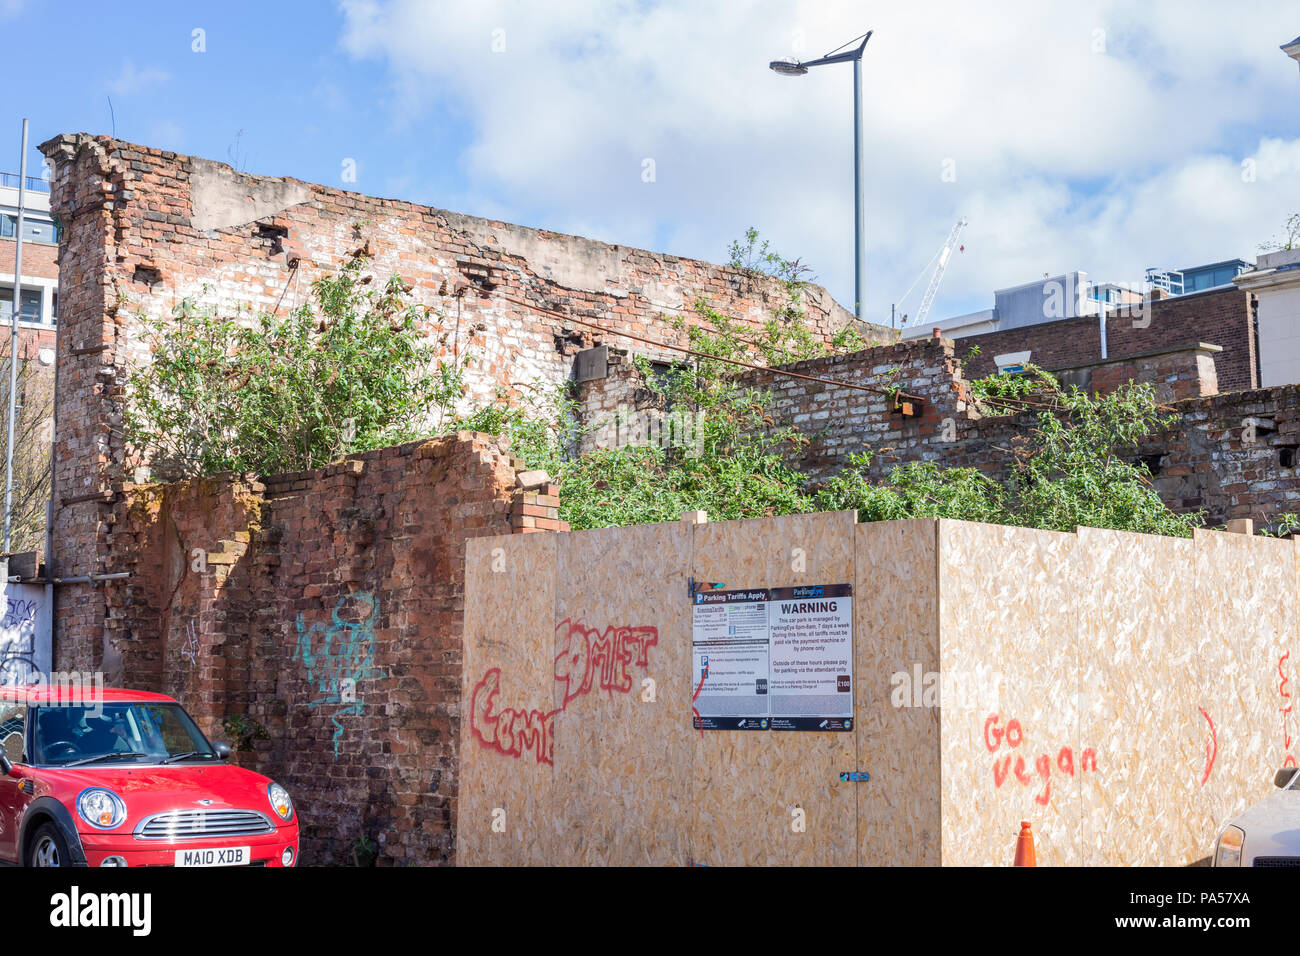 Overgrown plot, Liverpool, showing urban decay and ruined building - Stock Image